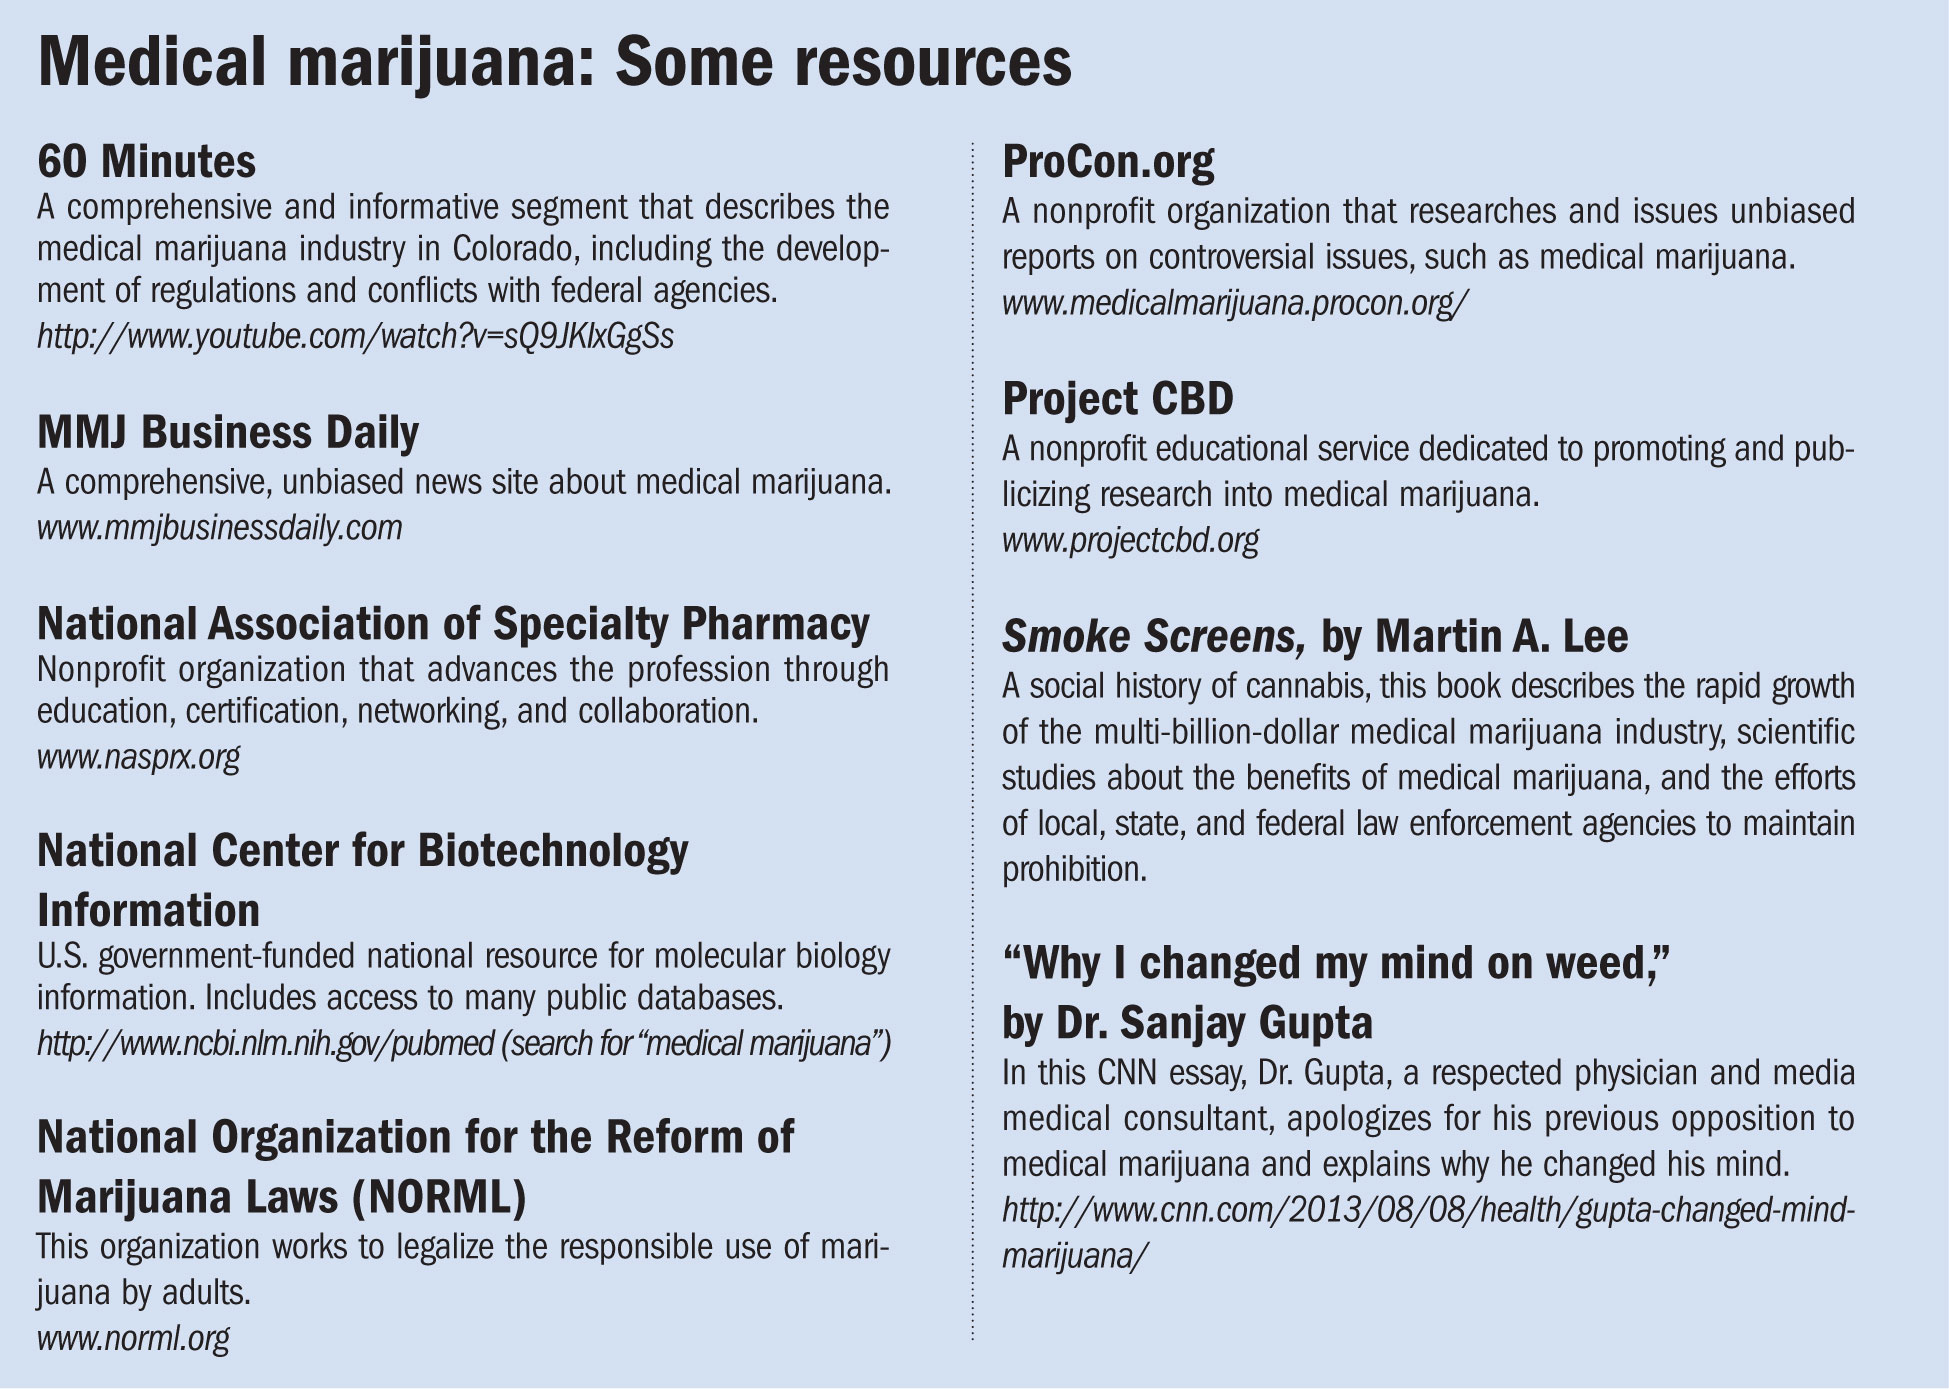 004 Essay Example Should Marijuana Legalized Medical You Establ Drugs Top Be Persuasive Illegal Full